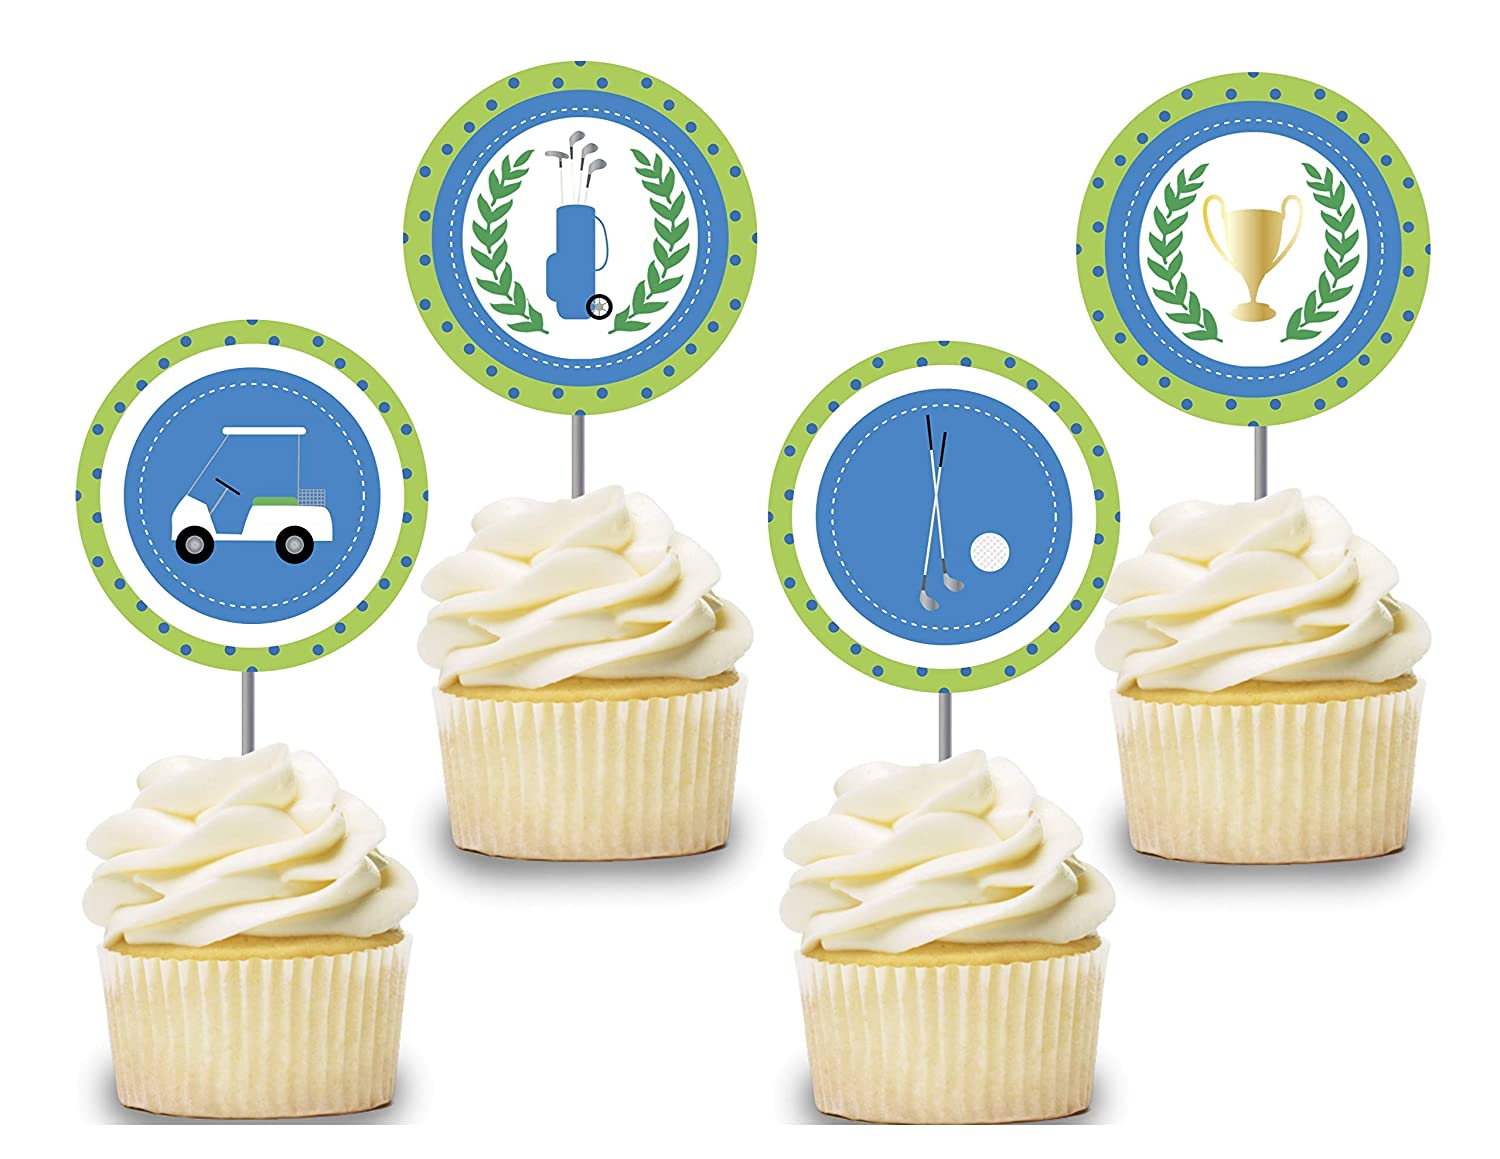 Golf Cupcake Toppers 12 pcs, Boy Cake Picks Birthday Decoration, Party Supplies, Golf Cart Themed Baby Shower